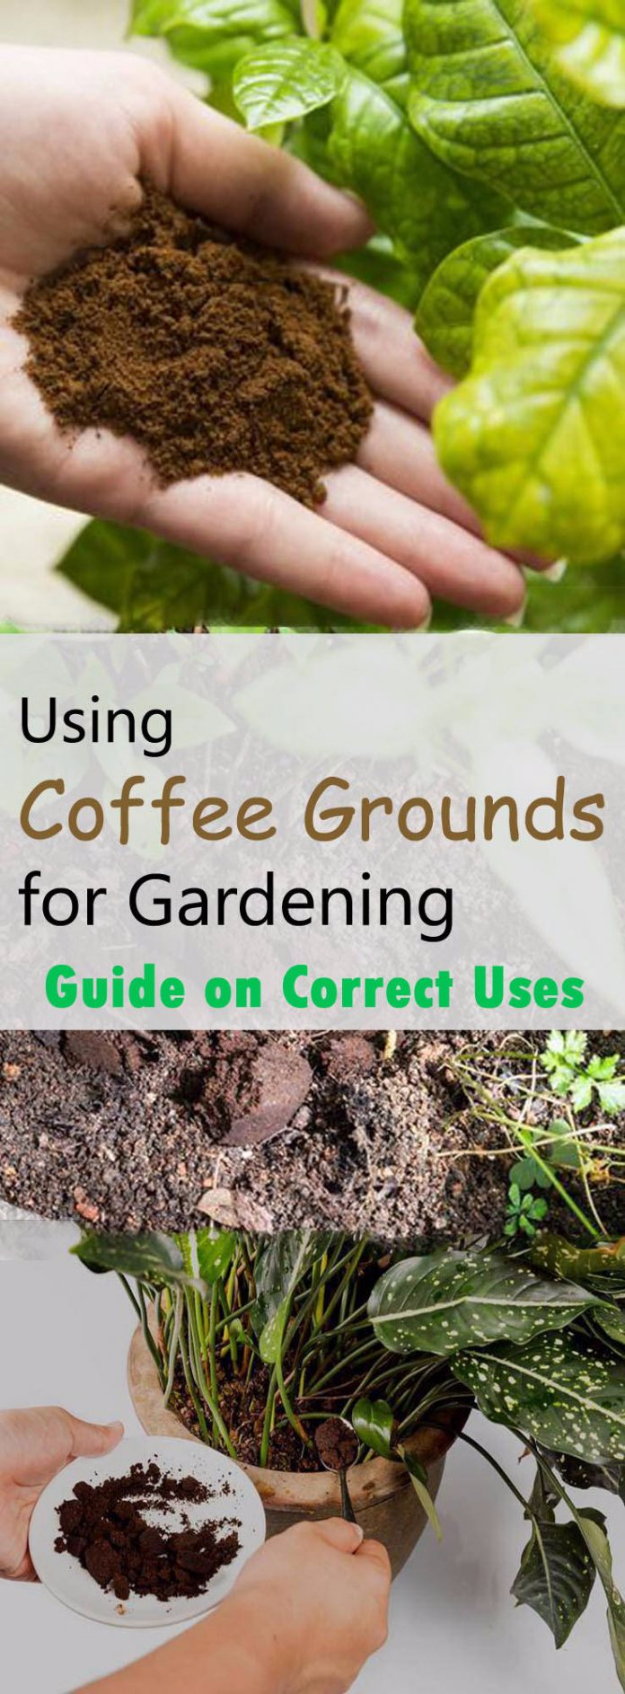 DIY Landscaping Hacks - Use Coffee Grounds To Keep Pests Away - Easy Ways to Make Your Yard and Home Look Awesome in Fall, Winter, Spring and Fall. Backyard Projects for Beginning Gardeners and Lawns - Tutorials and Step by Step Instructions